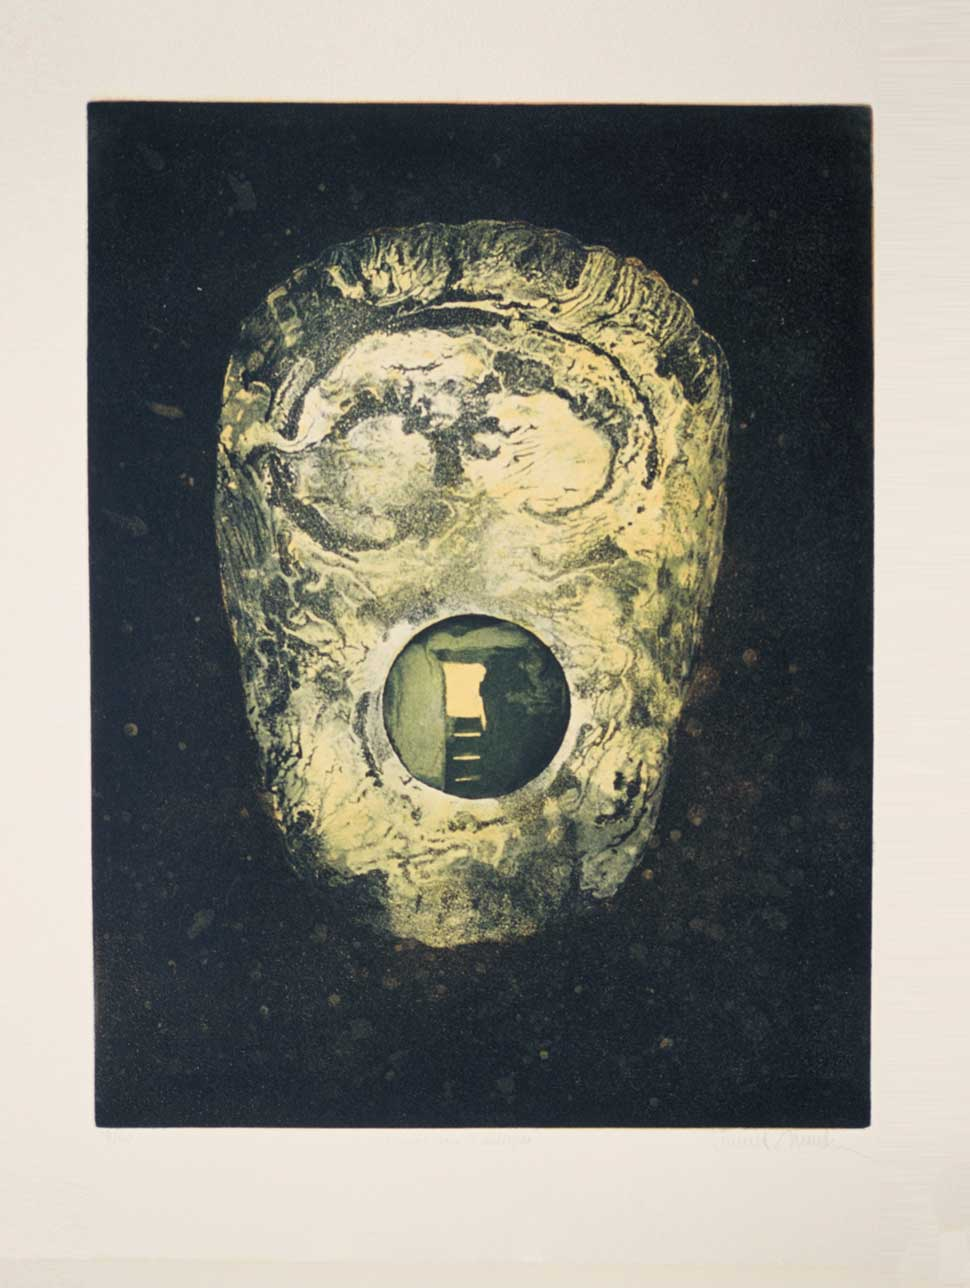 Mace Head etching by Vincent Sheridan 1980s